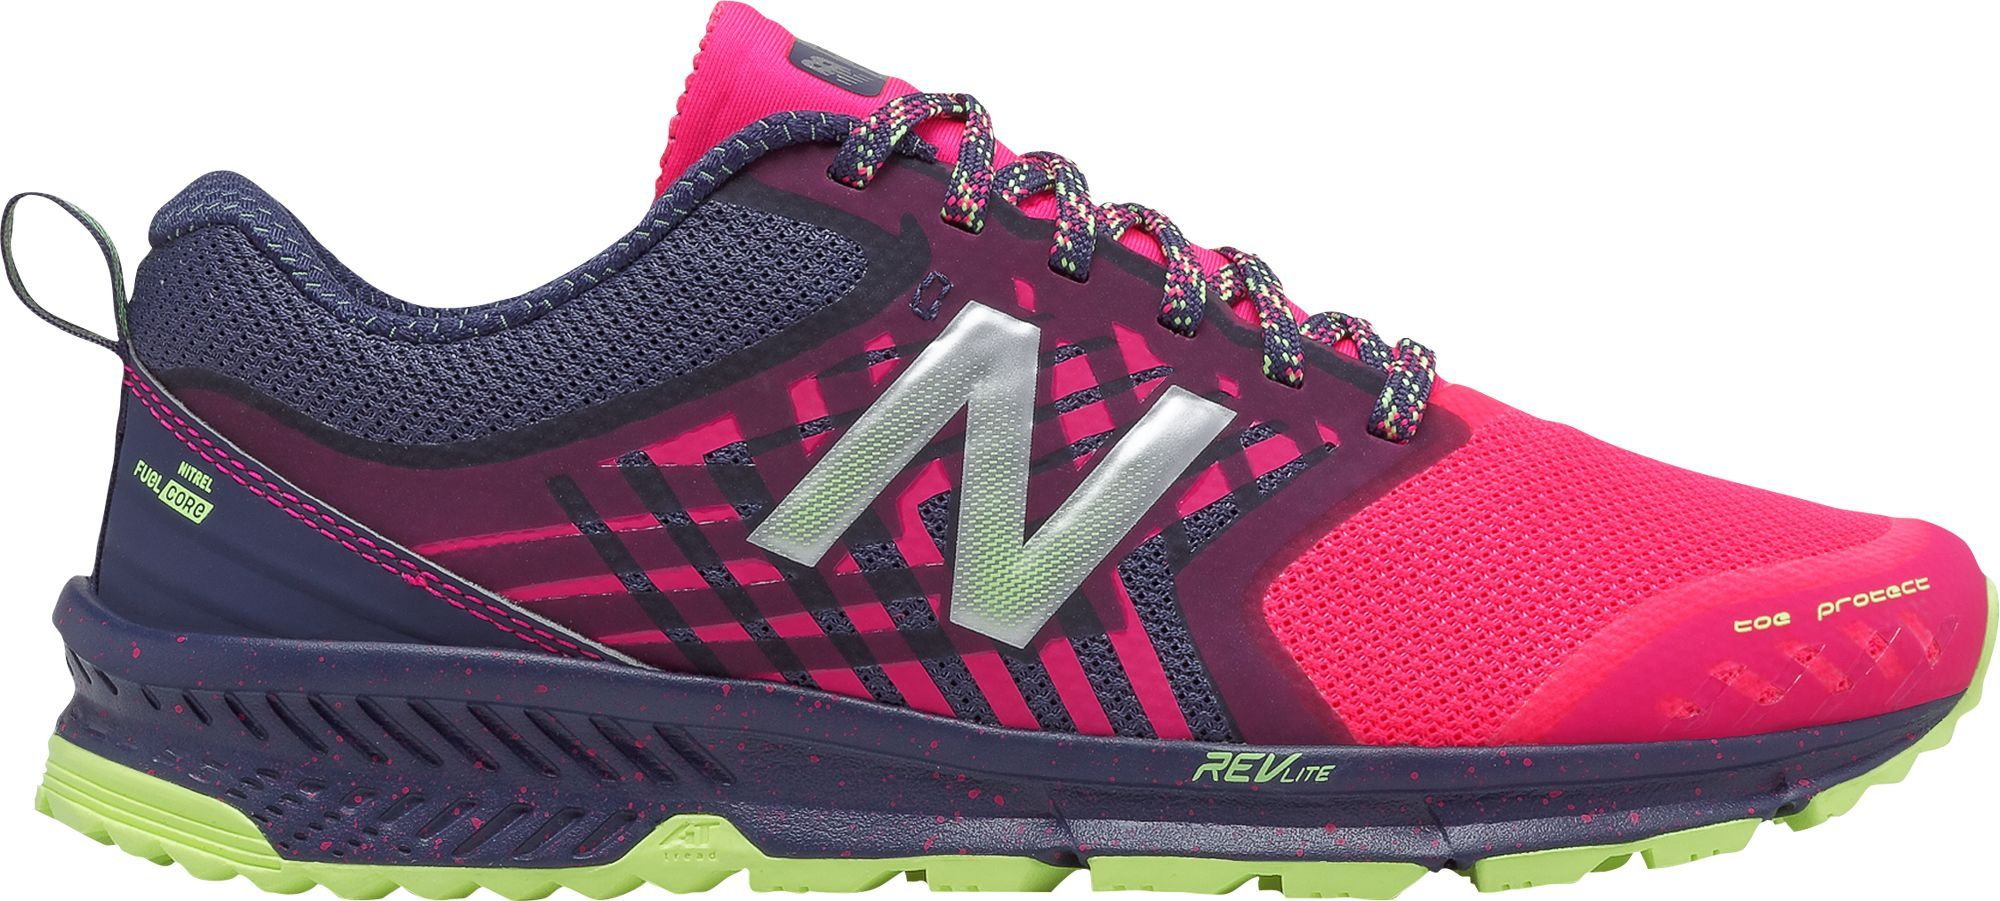 0671e884 New Balance Women's FuelCore Nitrel Trail Running Shoes, Size: 11.0, Pink